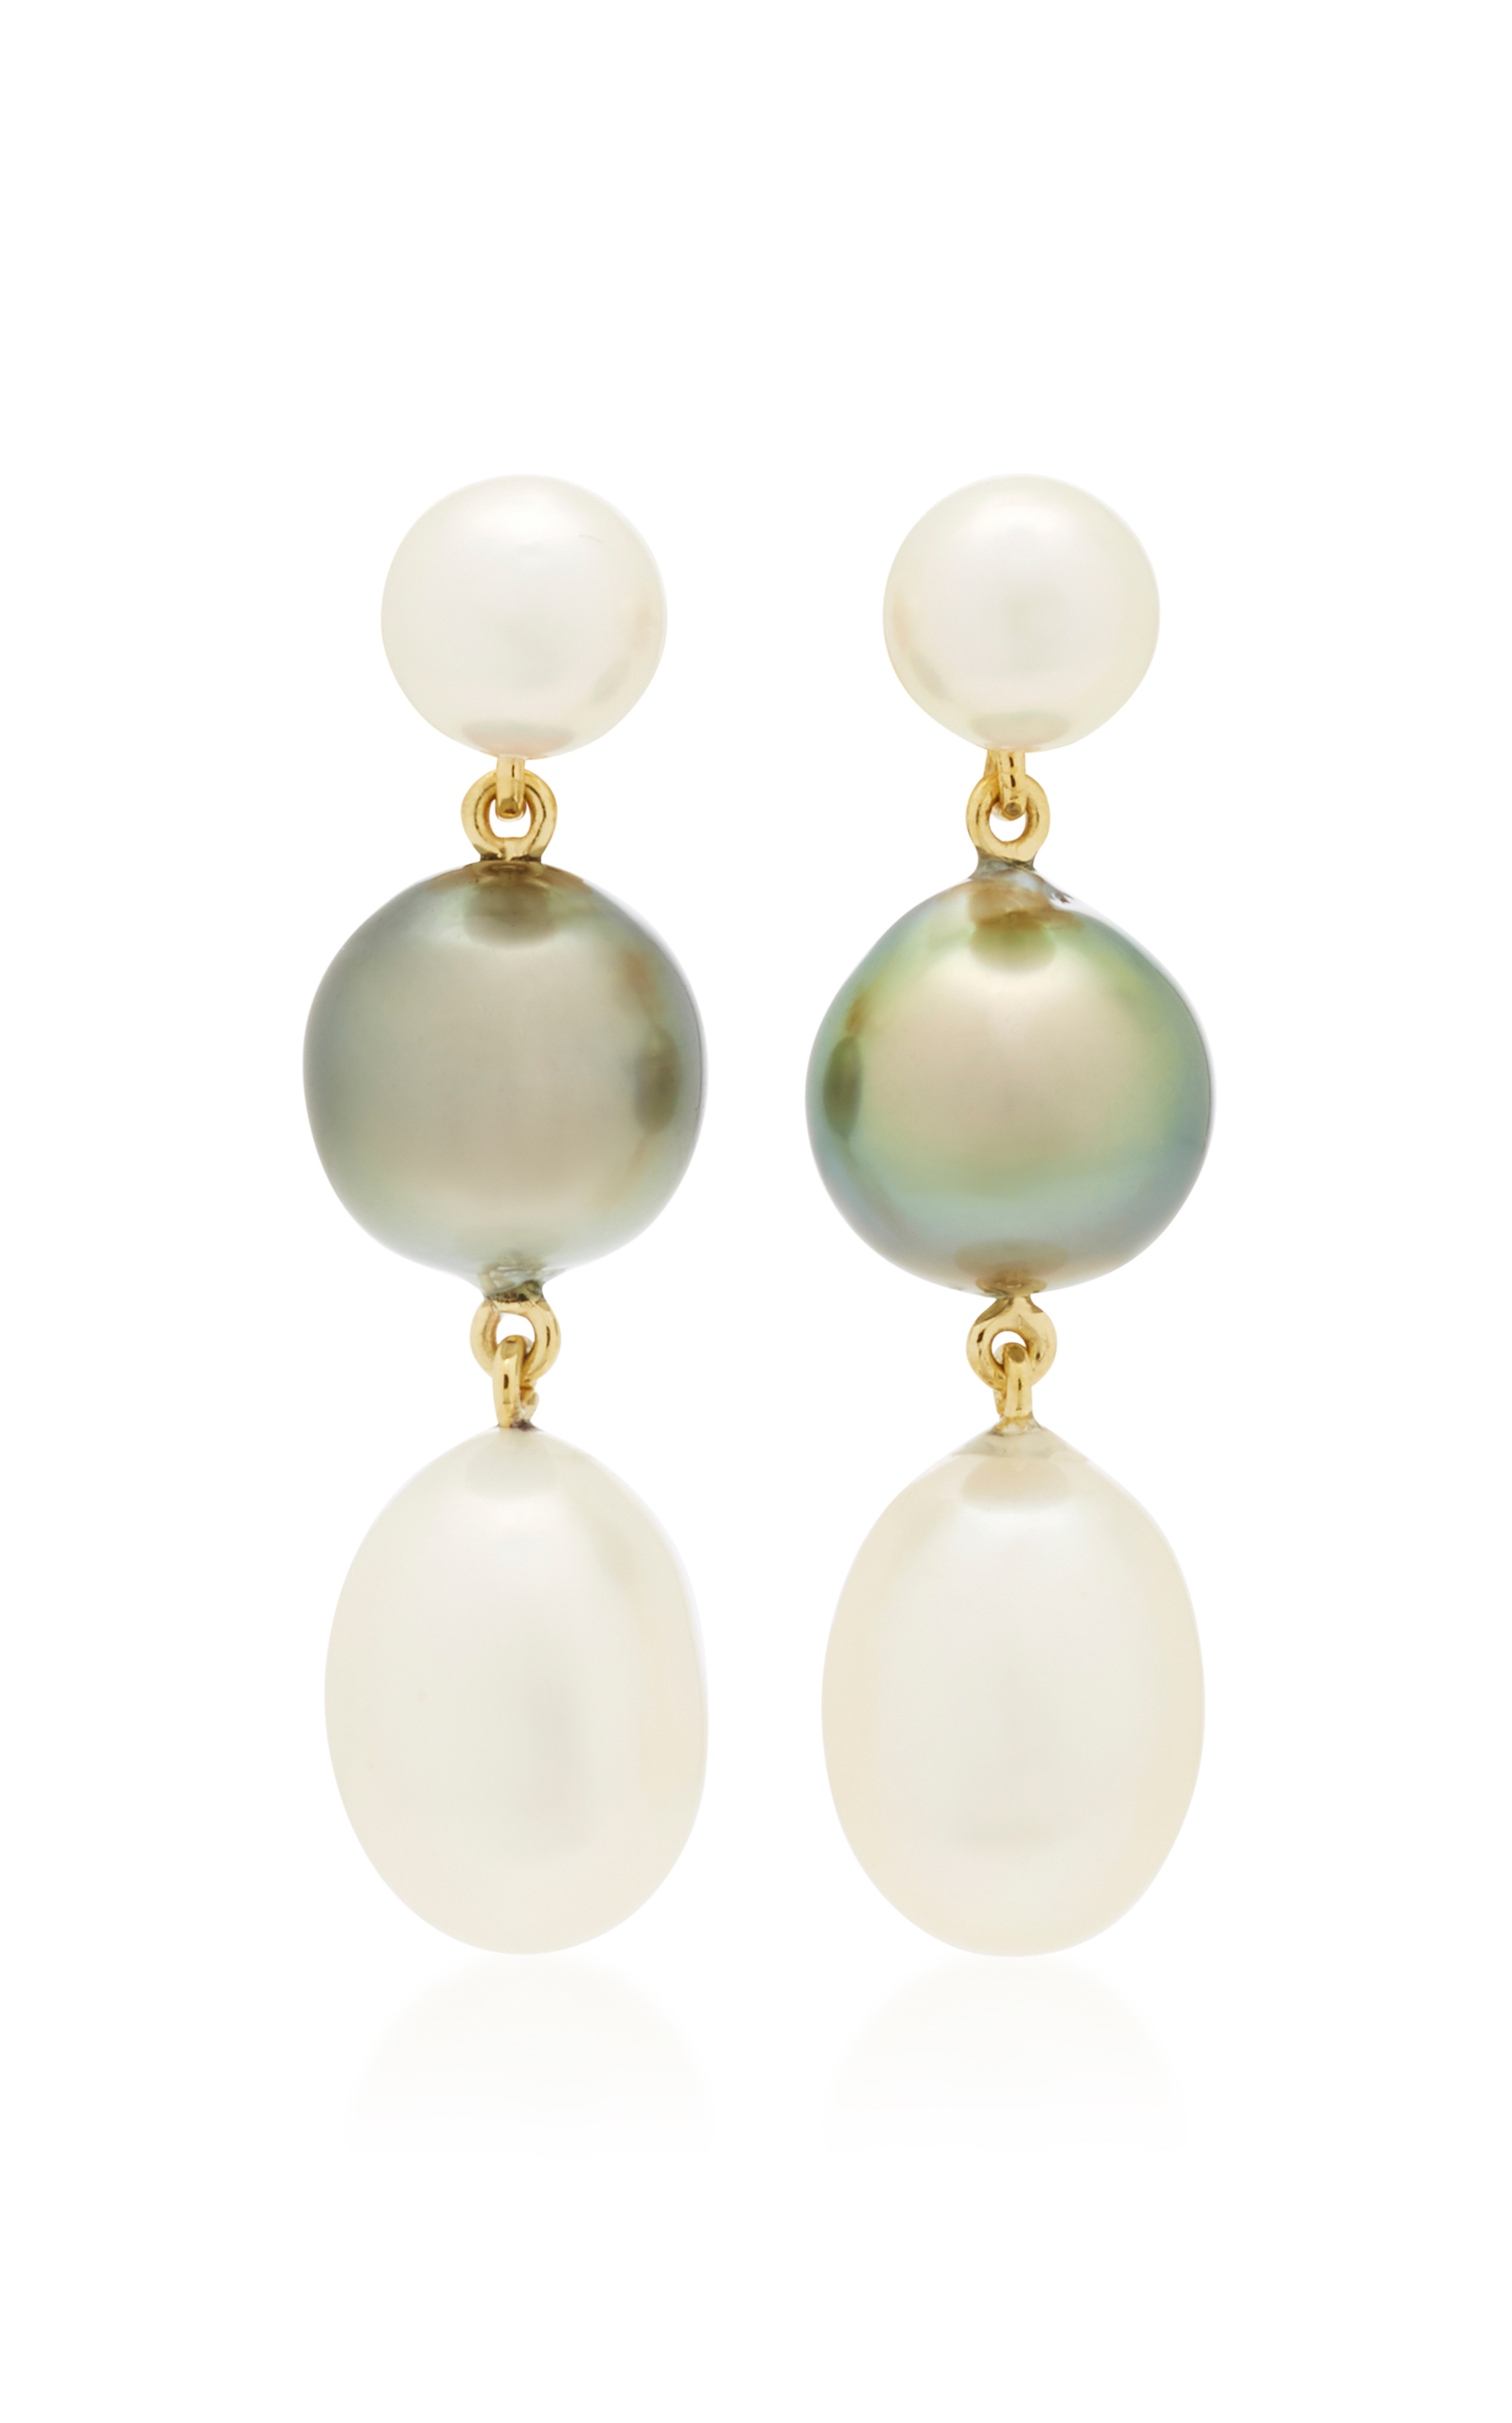 accents pearl earrings ring real akoya